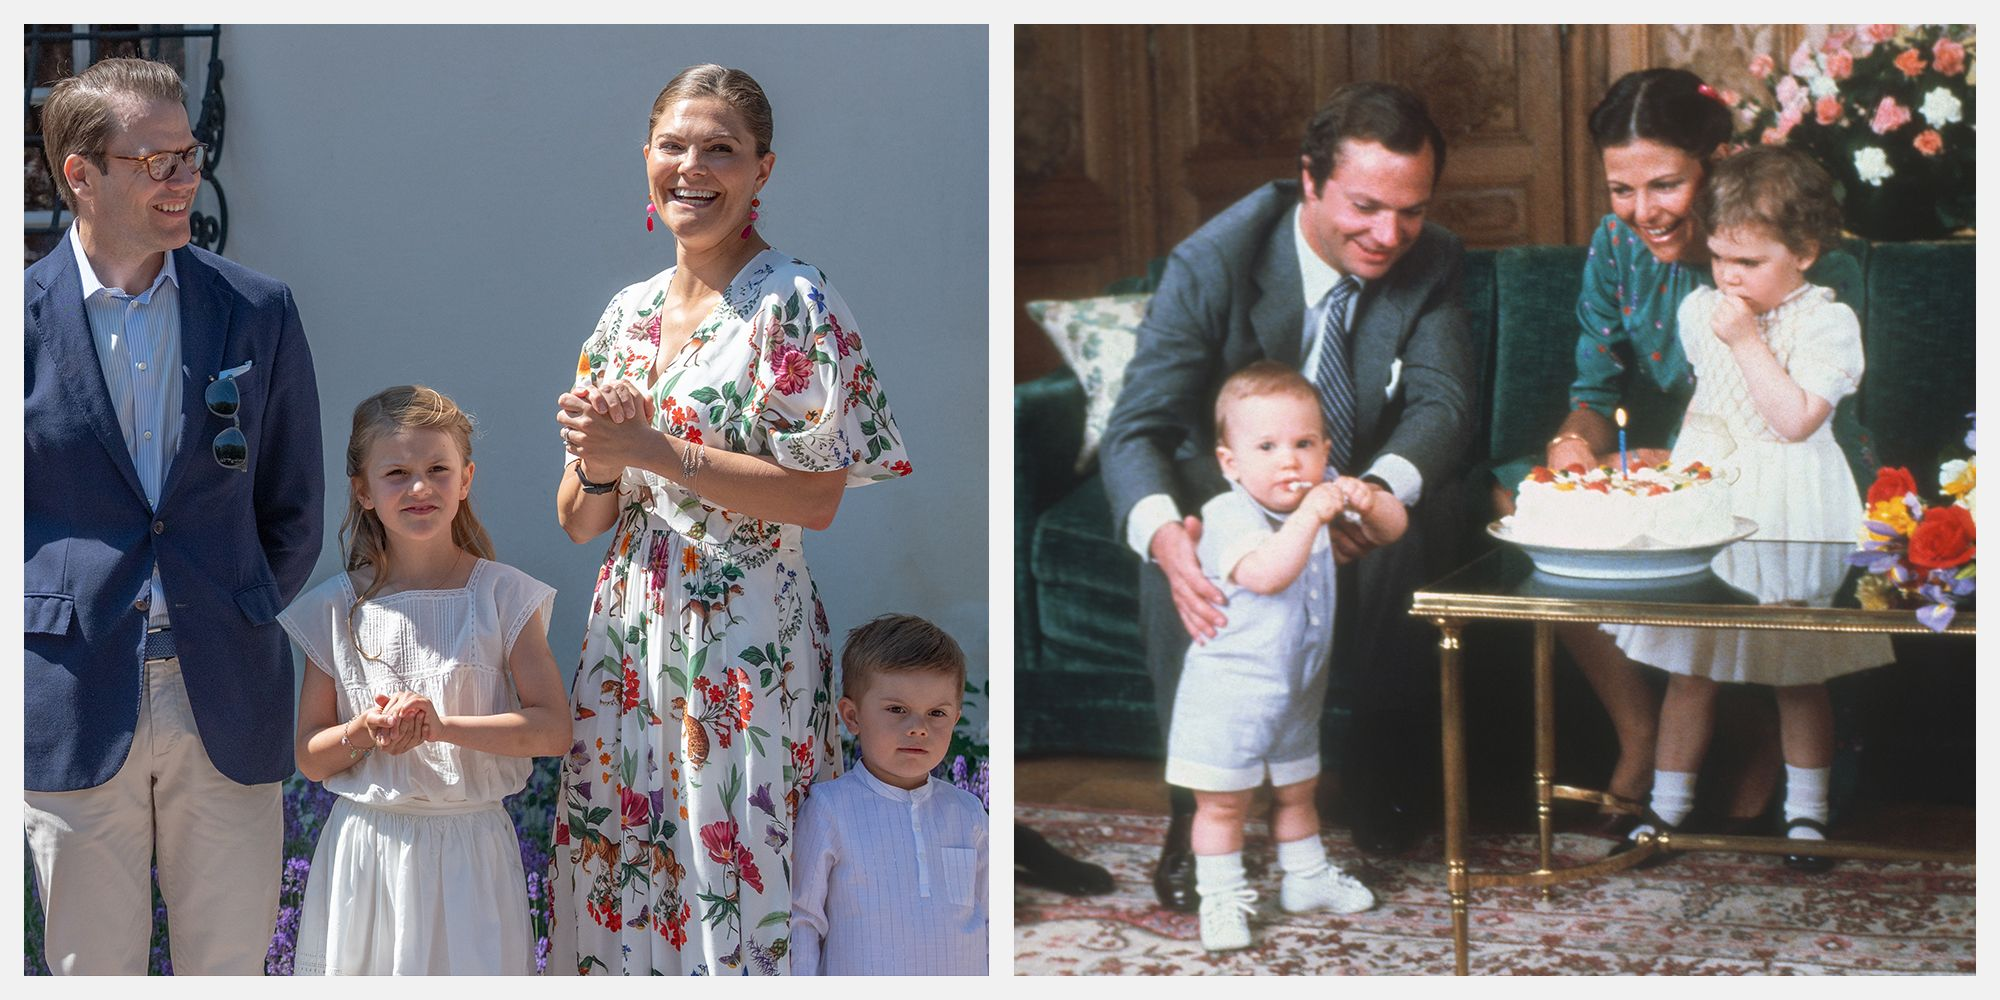 50 Photos of the Swedish Royal Family Through the Years